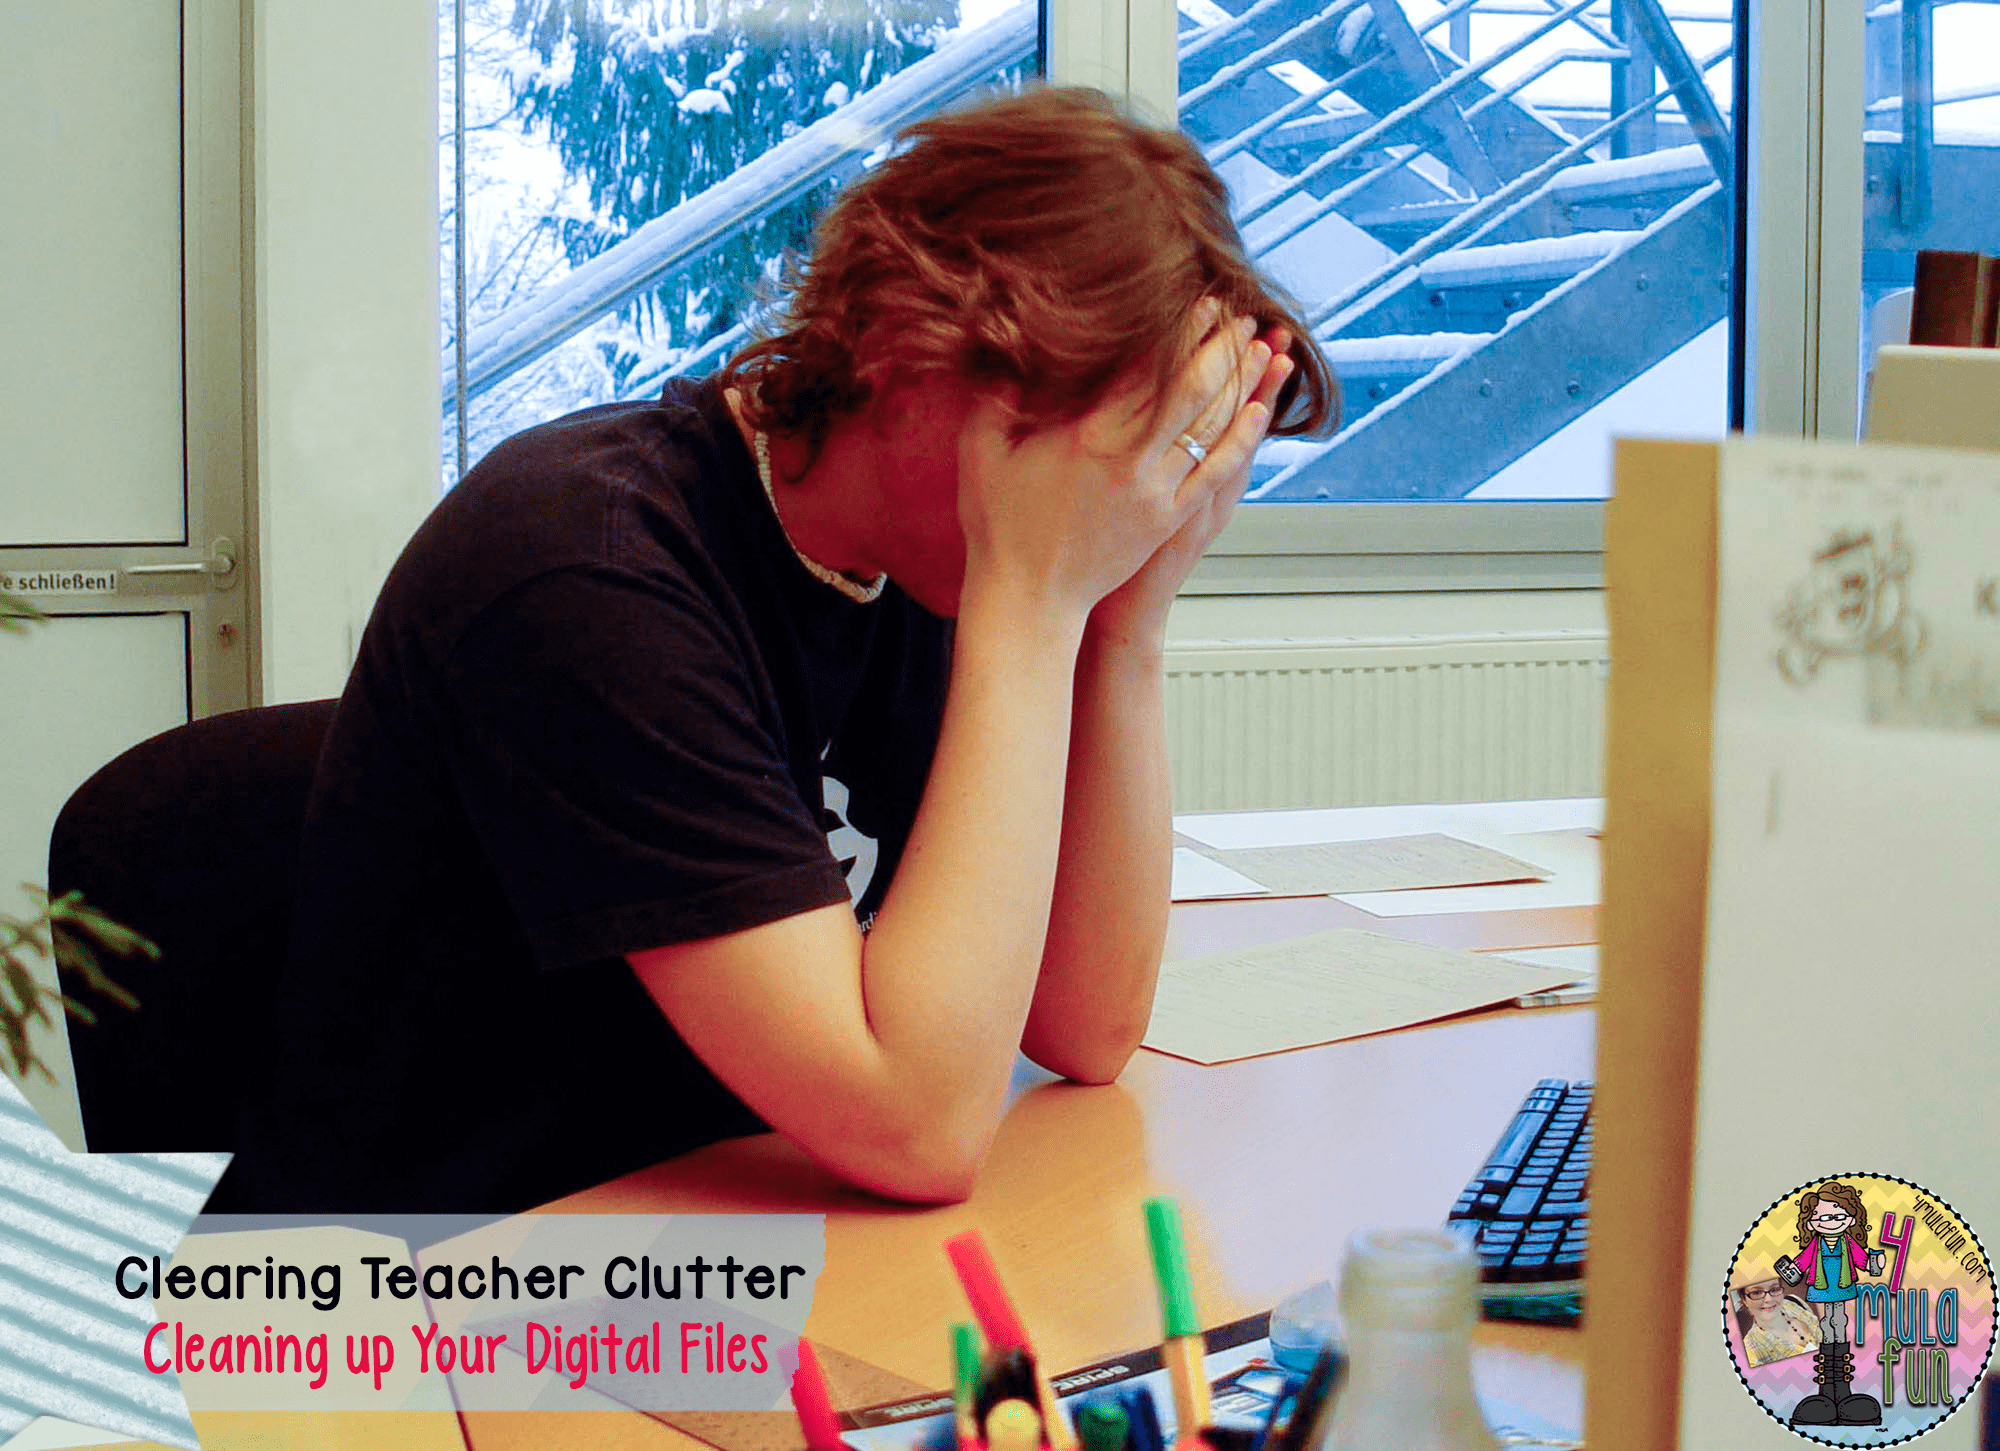 Clearing Teacher Clutter- Managing Your Computer Desktop